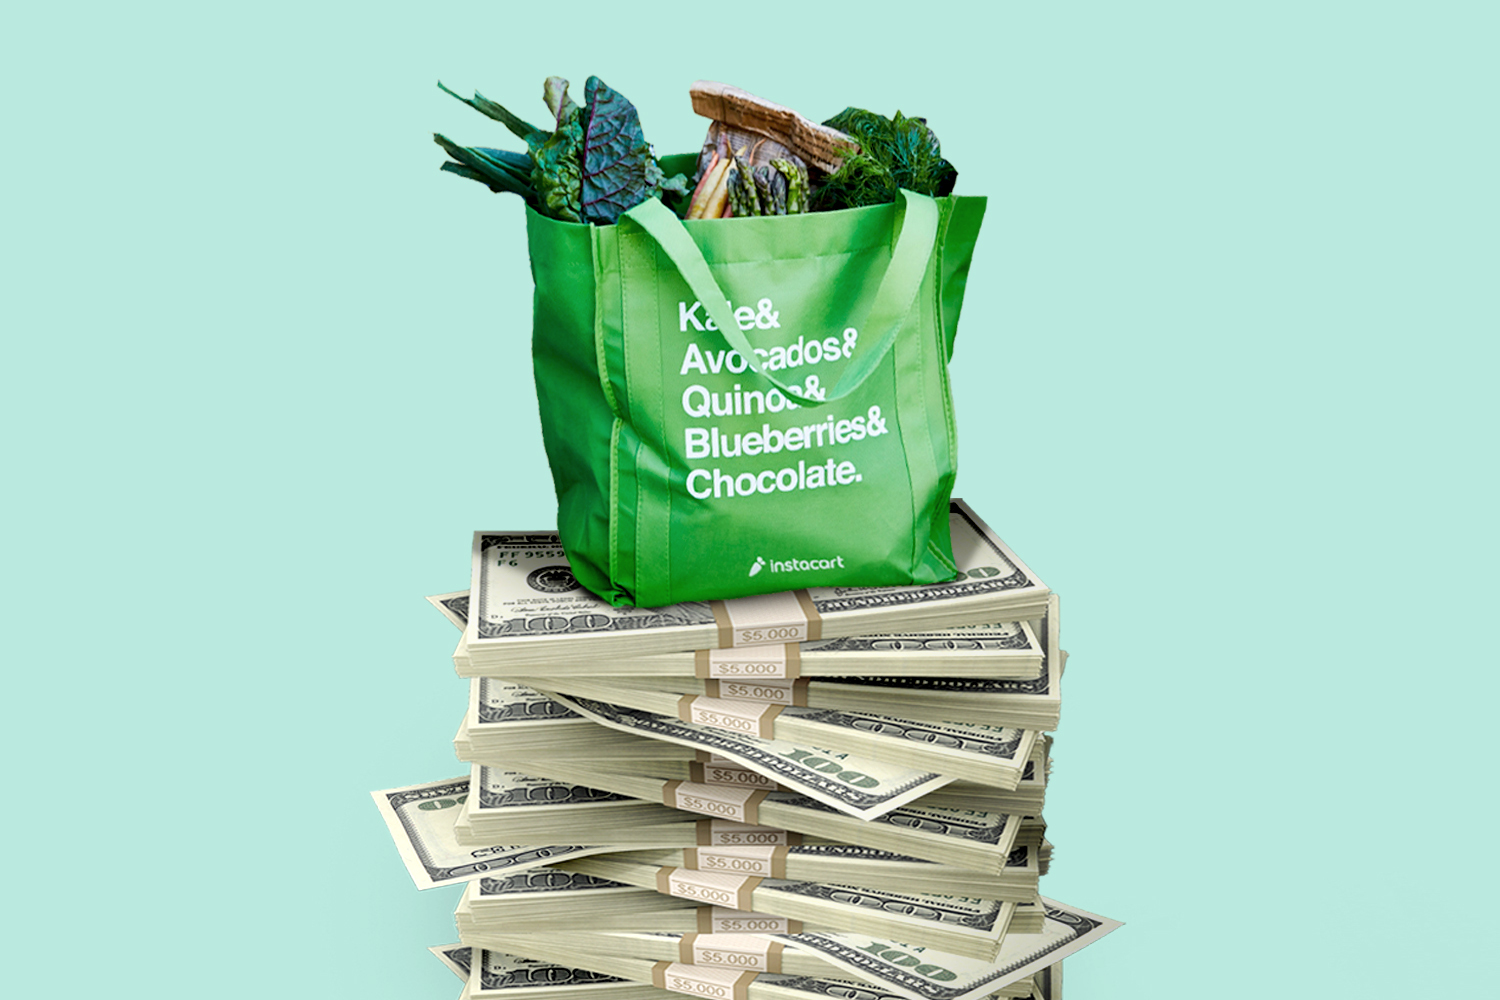 Instacart Doubles Valuation to $39B with Latest Funding Round